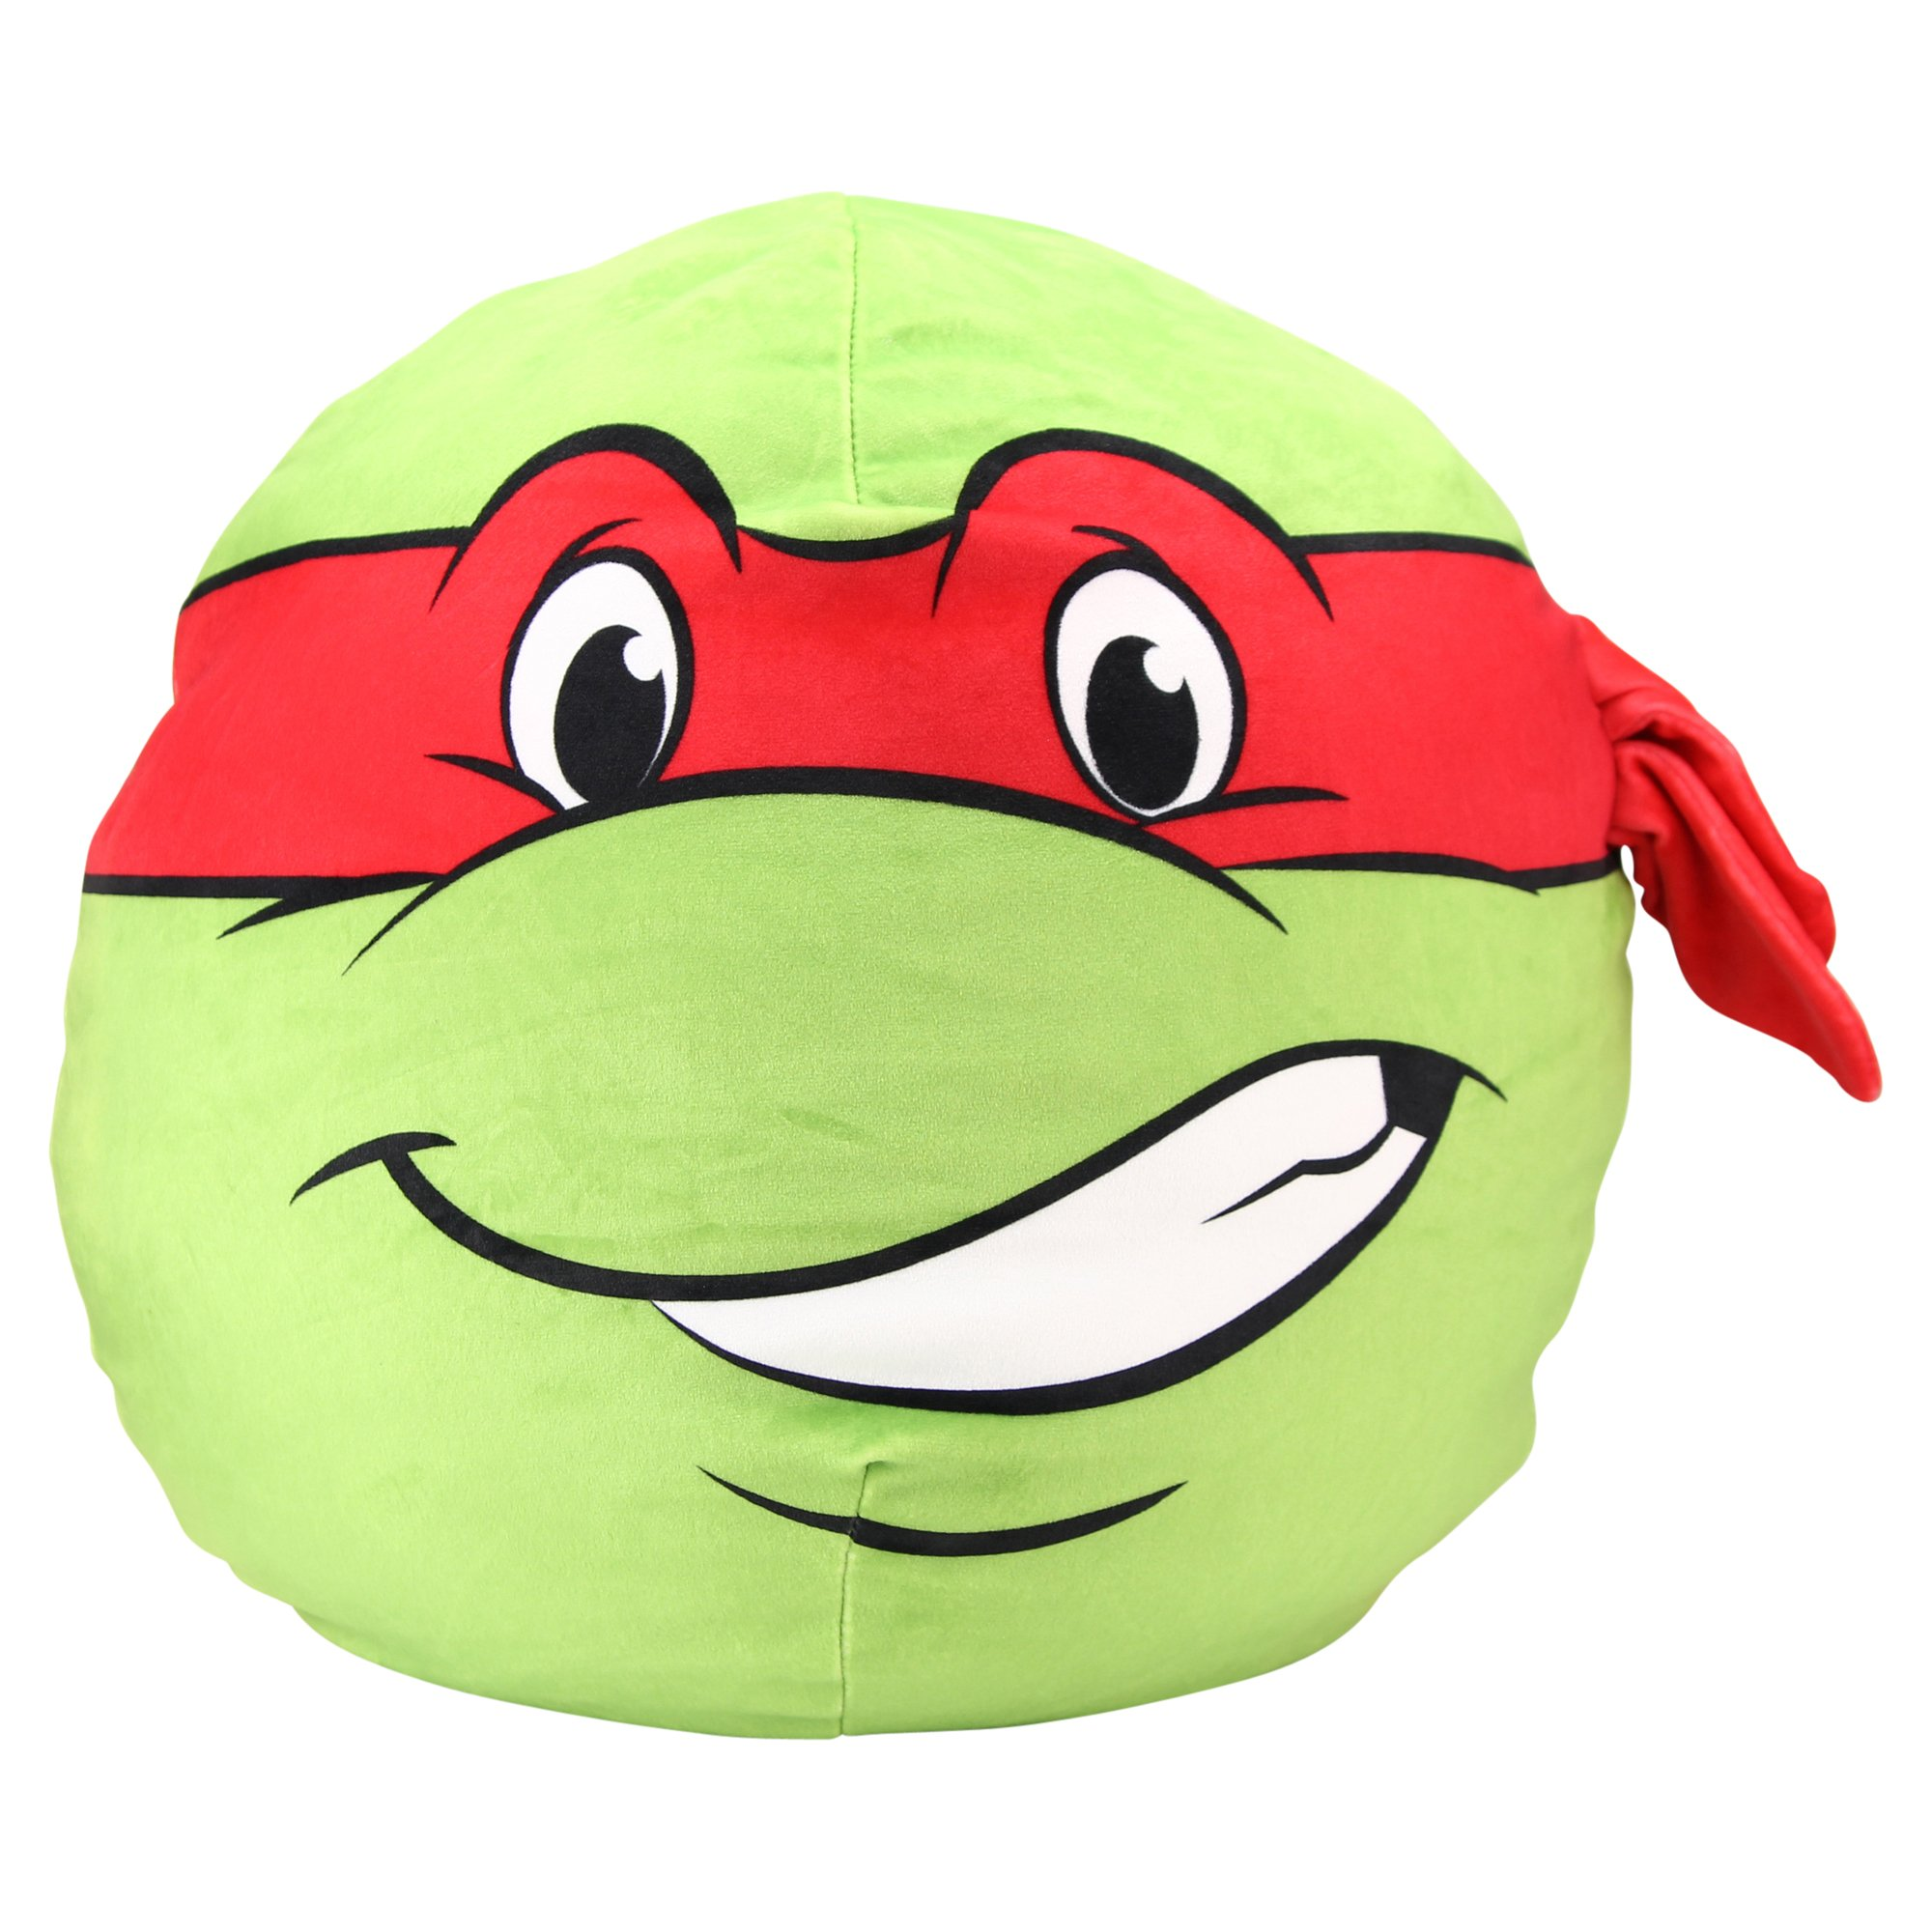 Northwest Kid's Character Travel Plush Pillow (Ninja Turtles Raphael) by Northwest